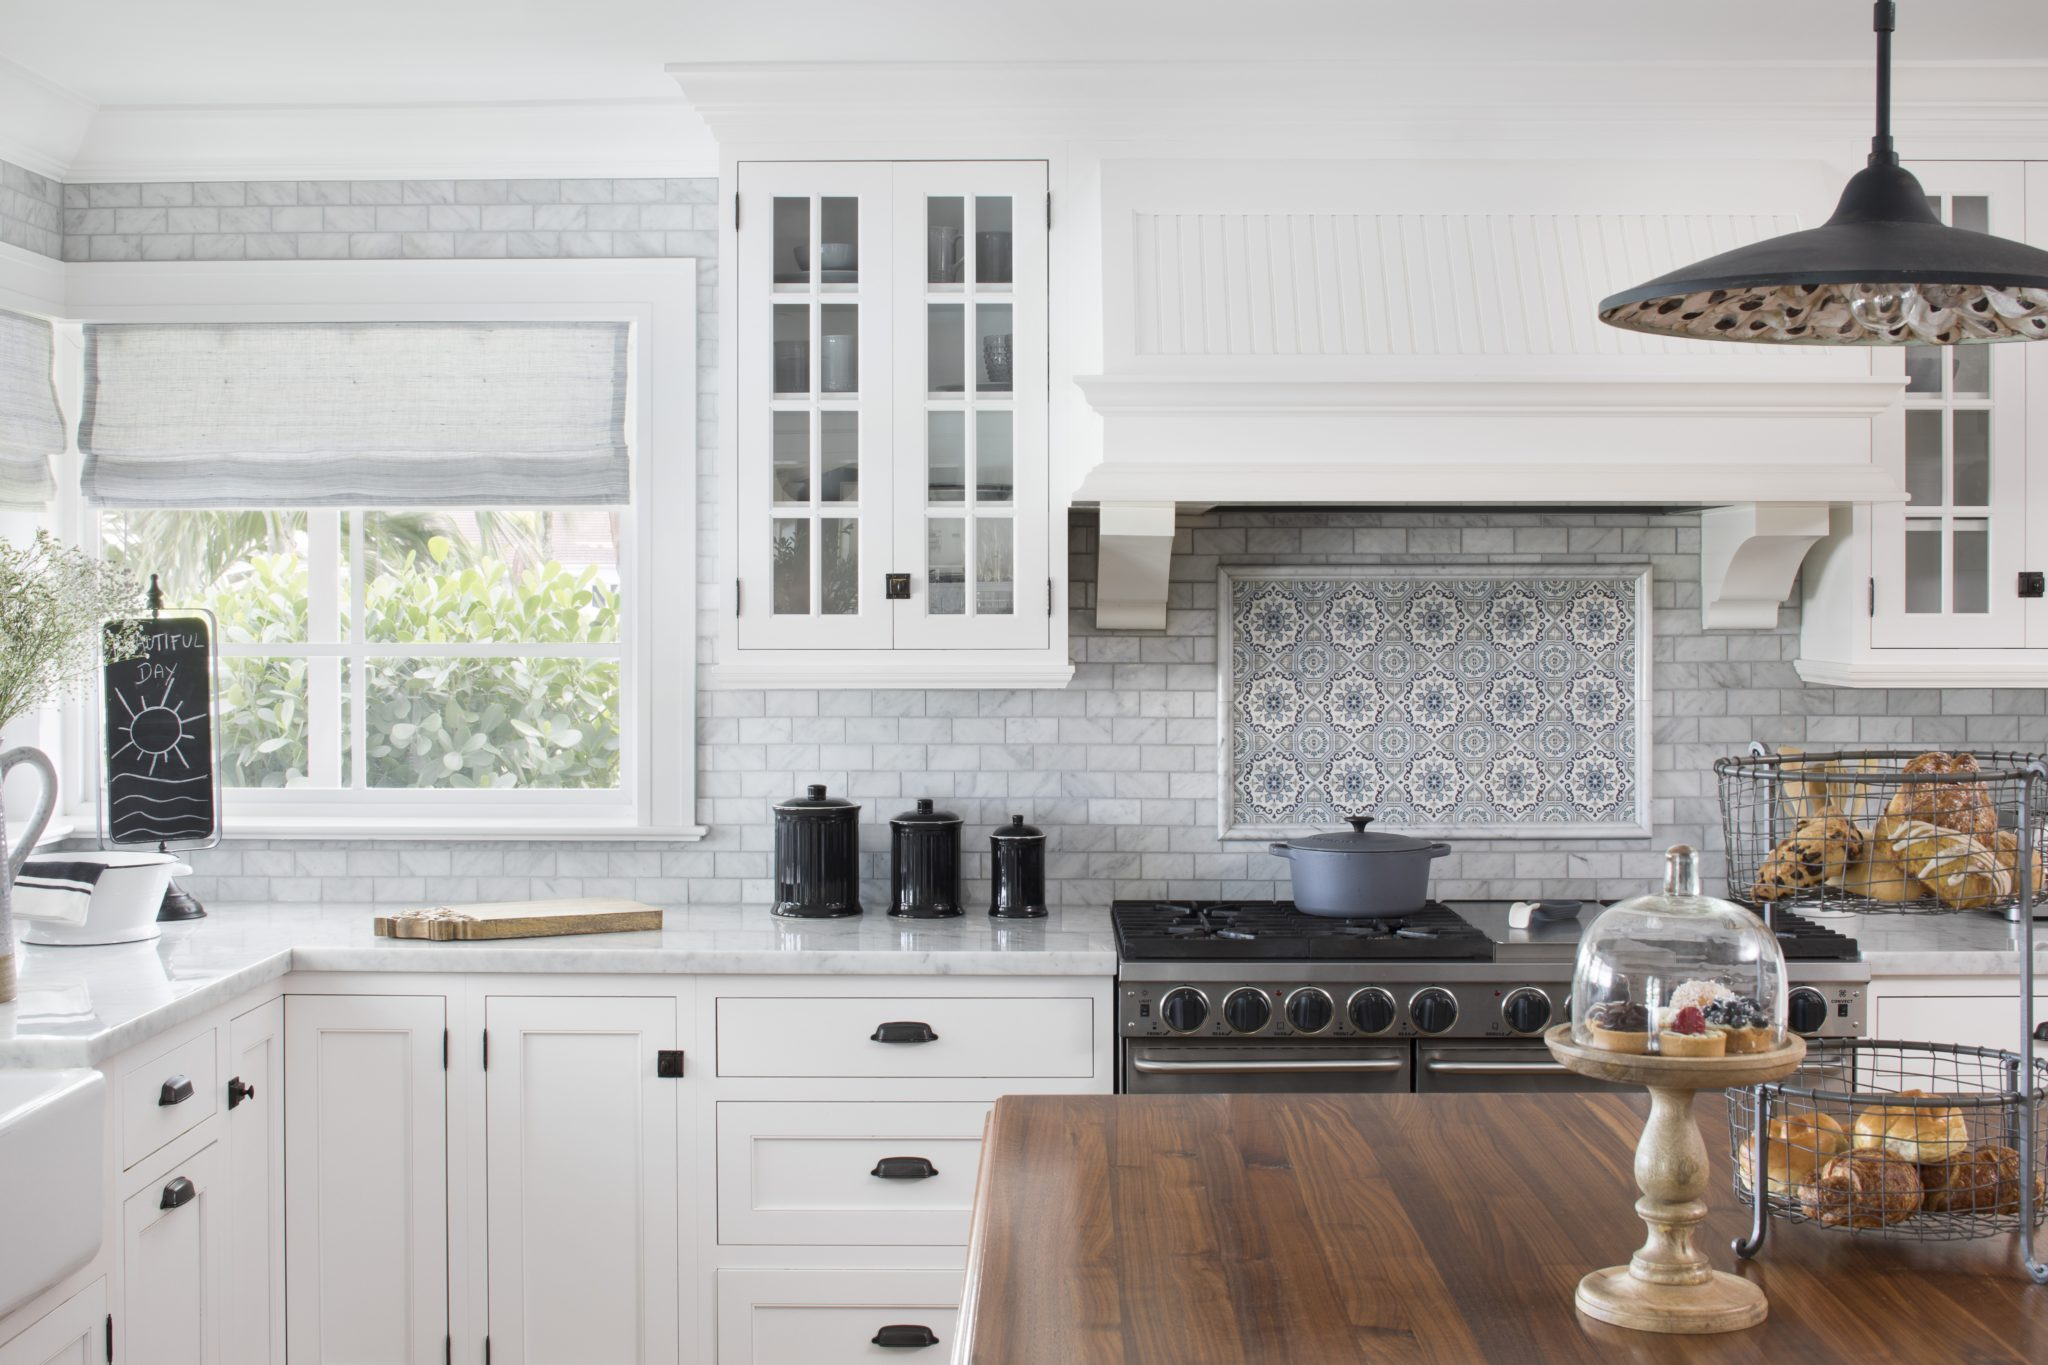 Farmhouse Coastal Kitchen with hand painted carrara marble backsplash by Lisa Michael Interiors